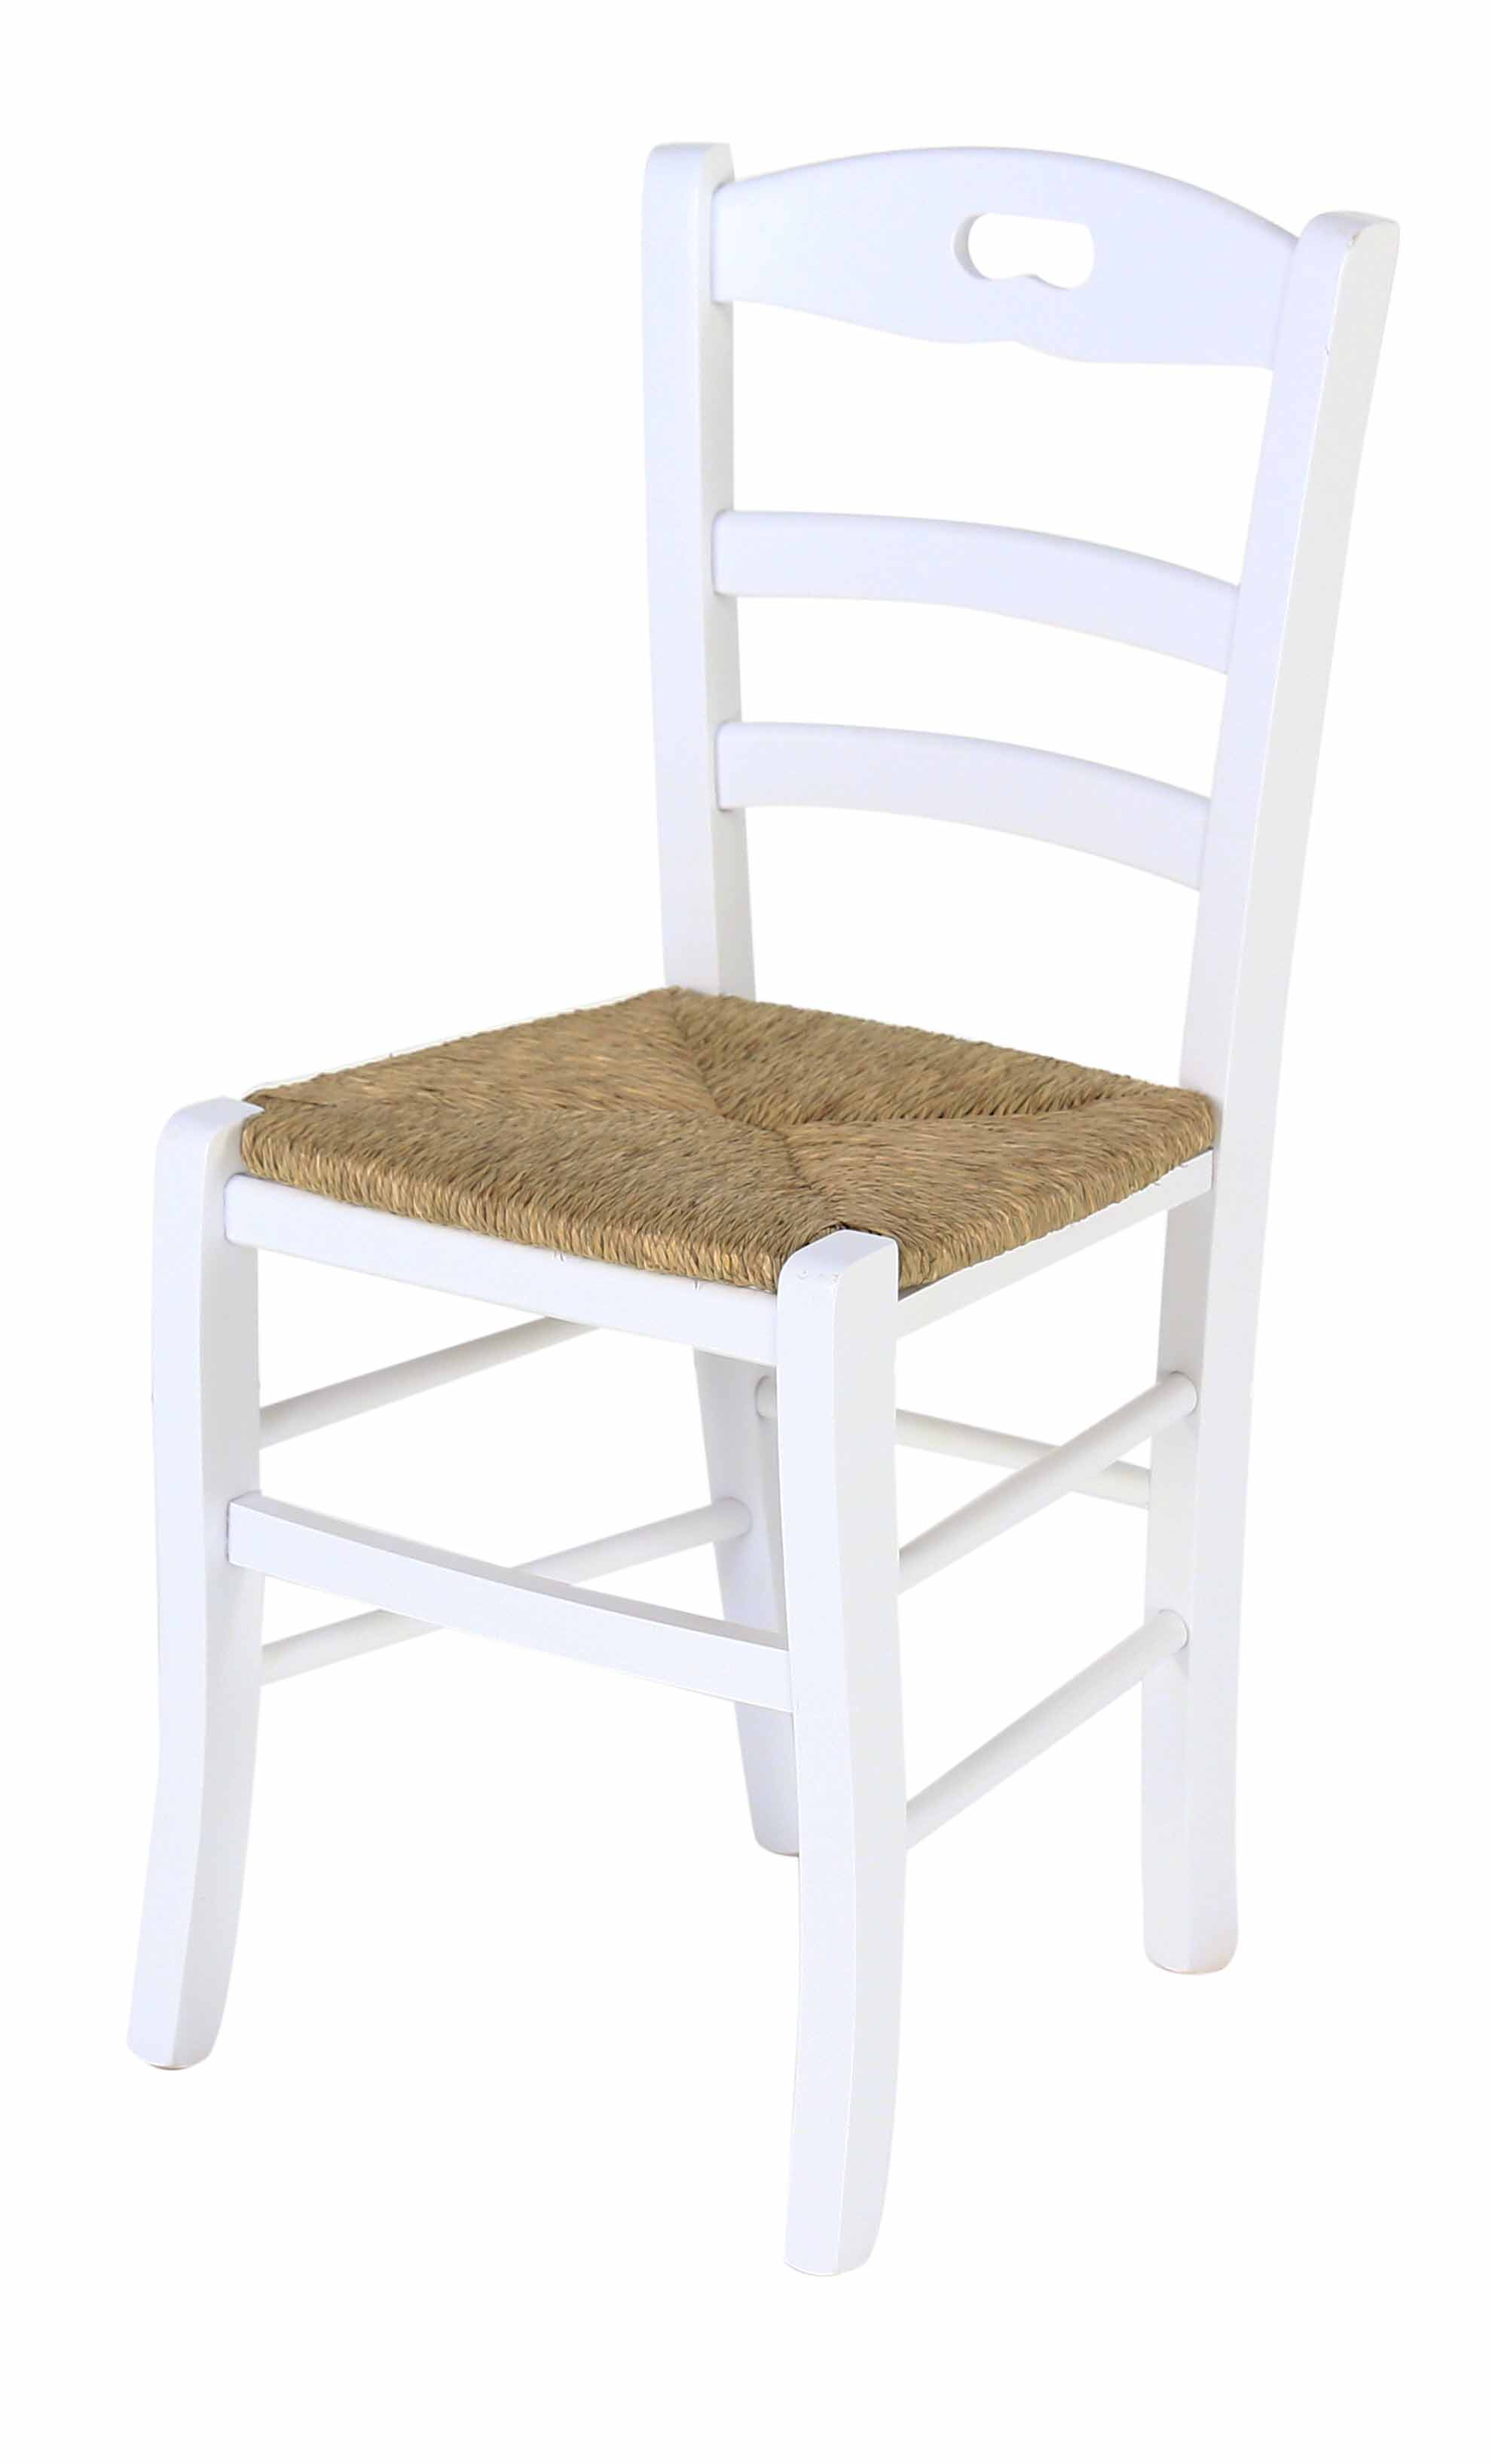 Coin repas chaises chaise h tre massif blanche assise paille vieugy le - Chaise paille blanche ...